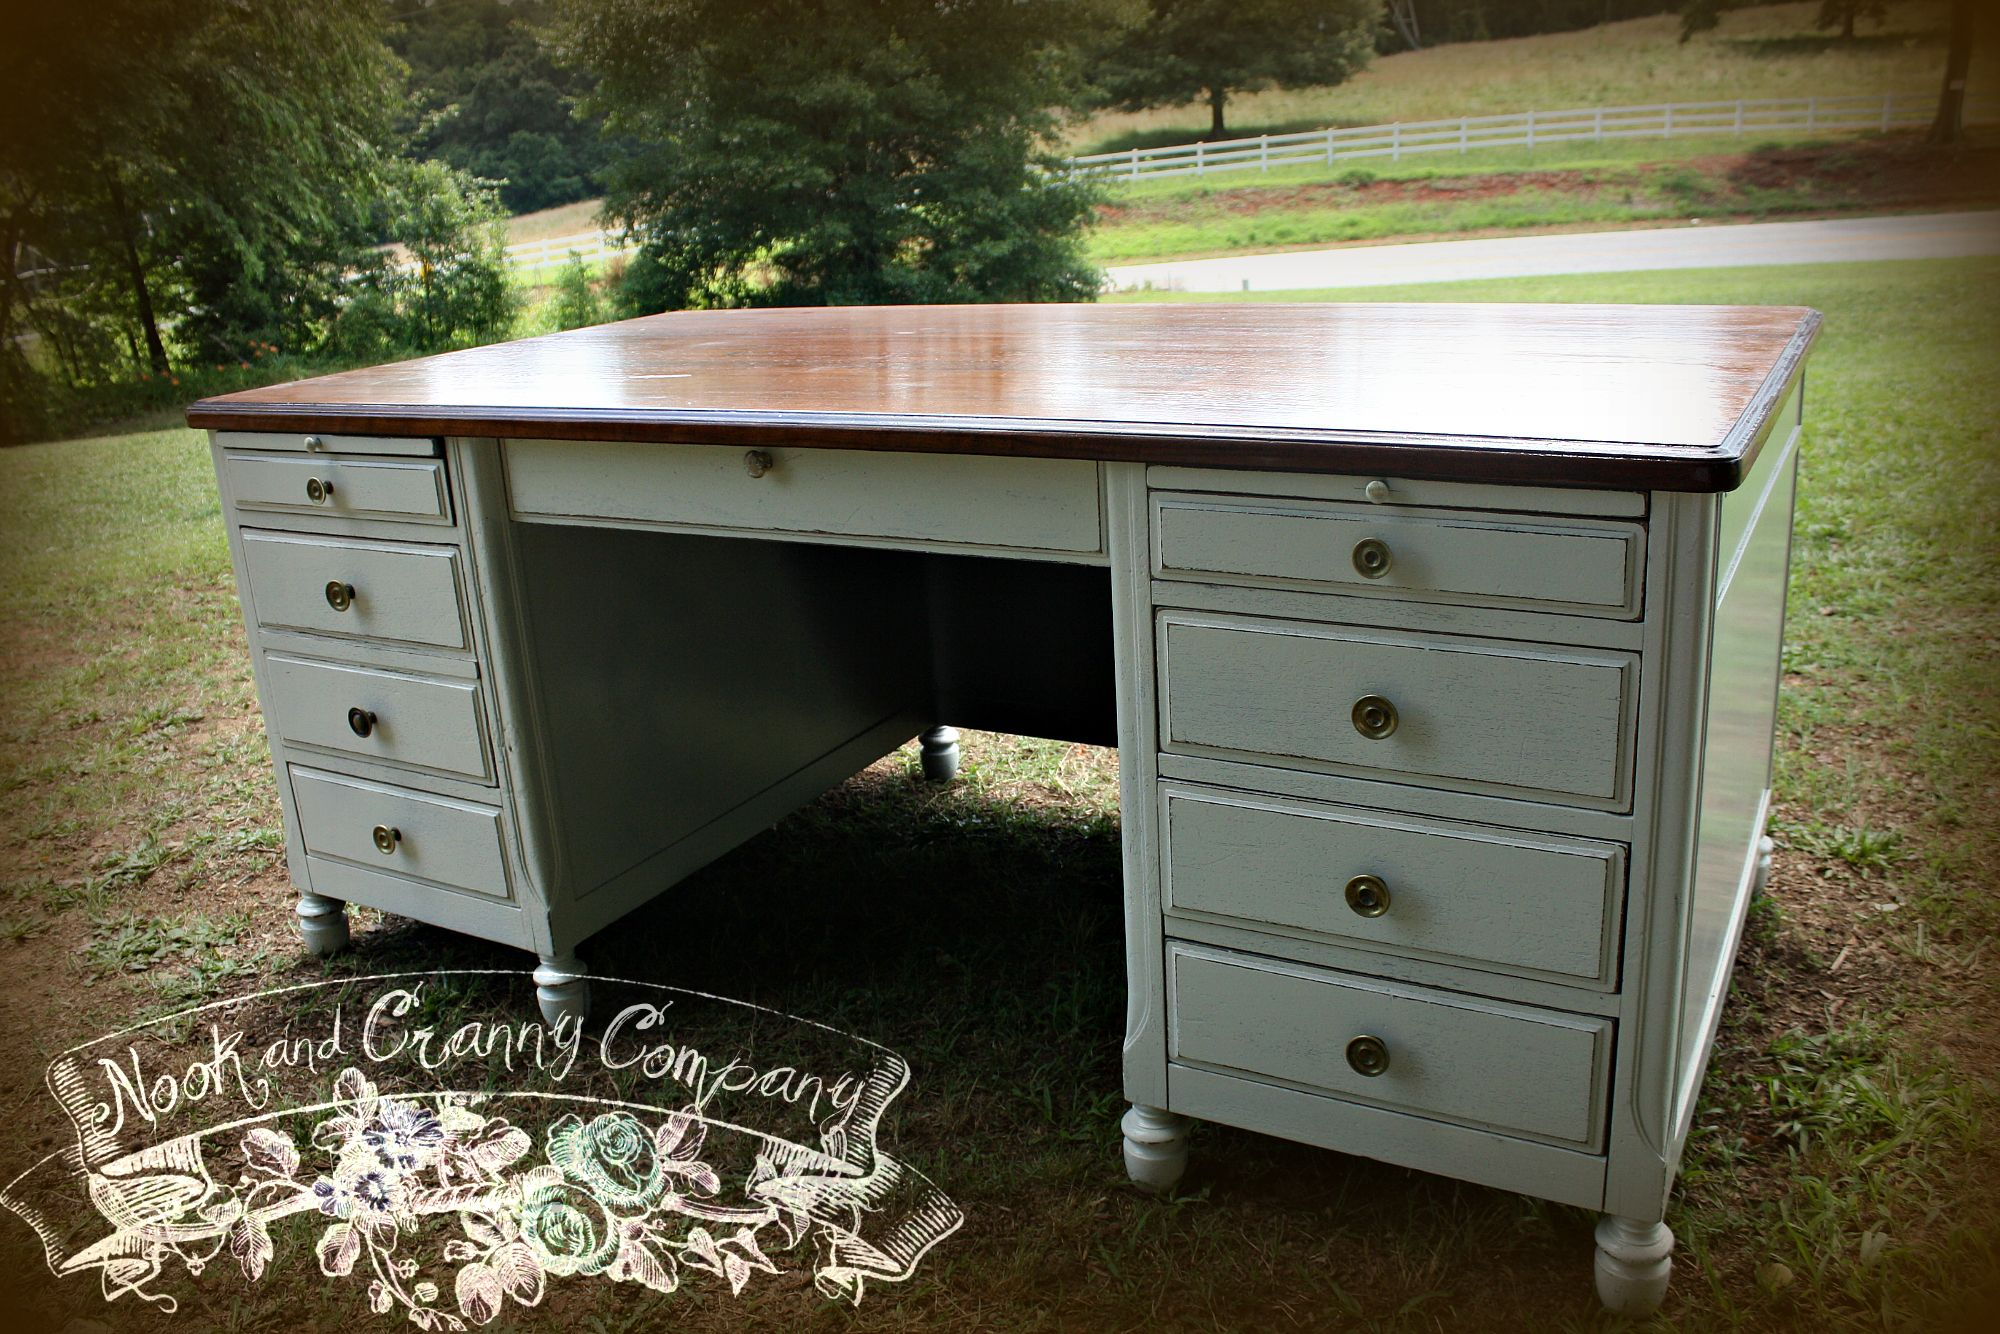 Antique Executive Desk 1920s Vintage Painted White Office Furniture Hand Painted Restored Furnit White Office Furniture Used Office Furniture Home Office Decor